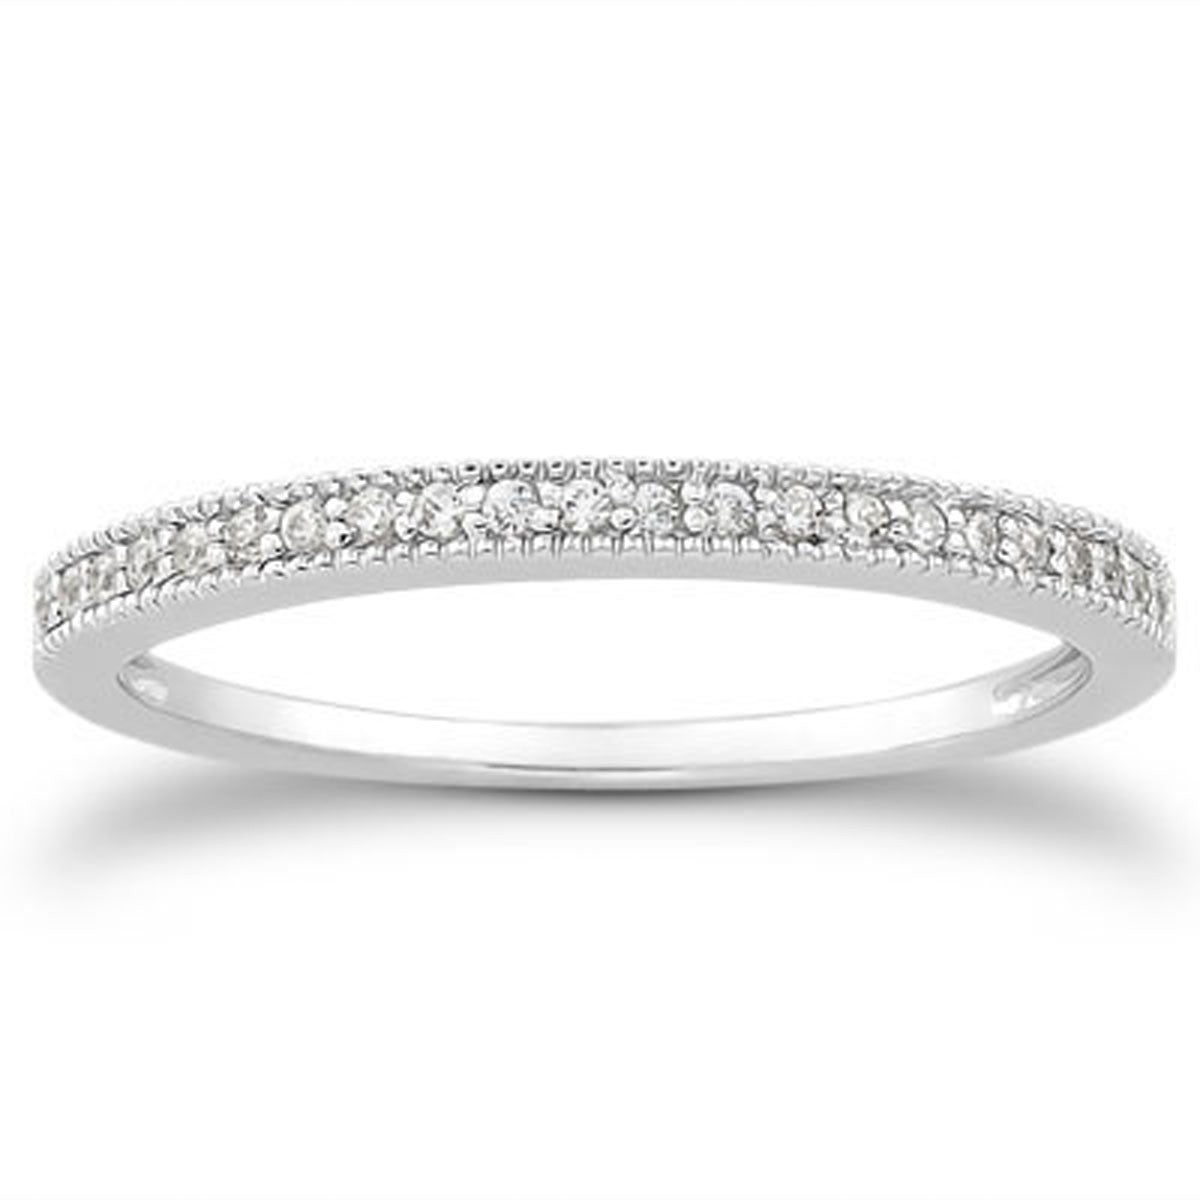 pave band collections catherine rings engagement angiel diamond bands eternity delicate nyc products micro